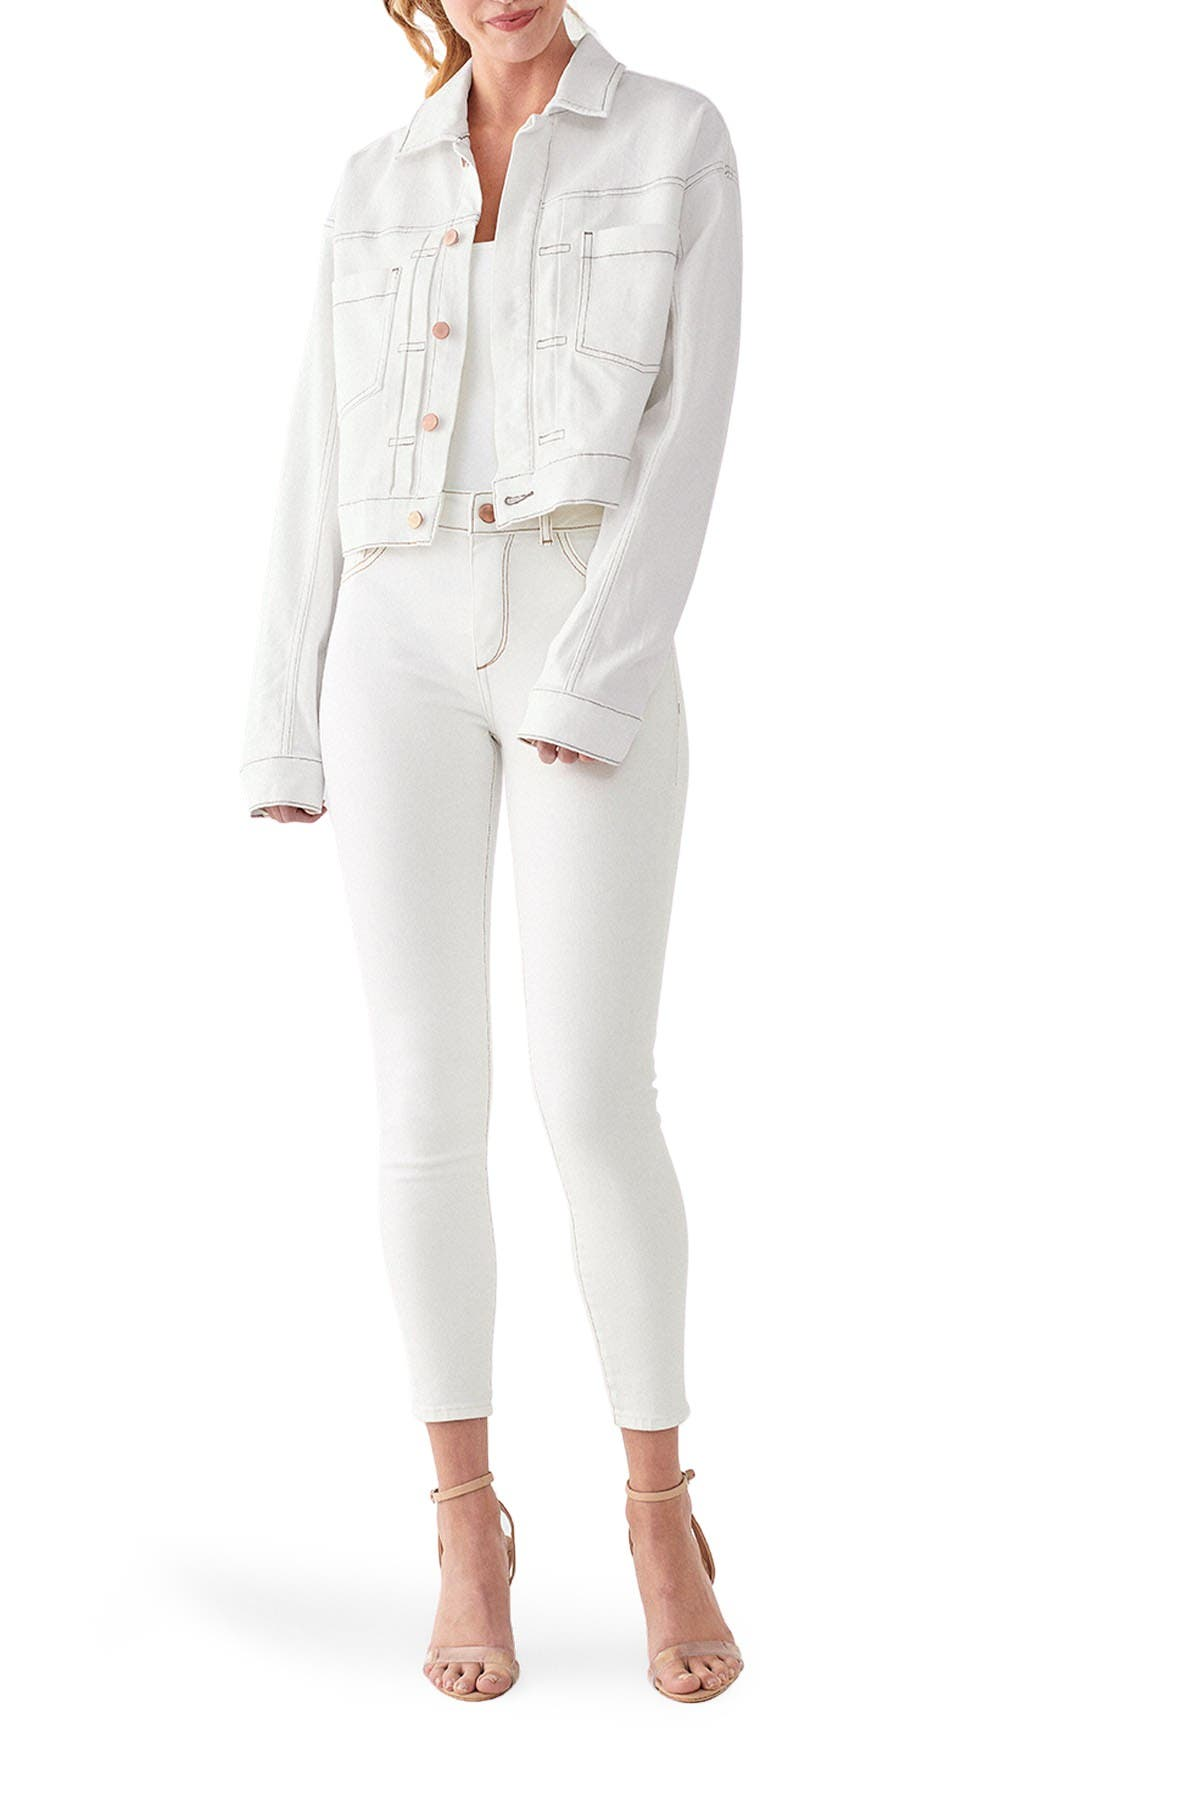 Image of DL1961 Annie Relaxed Vintage Jacket